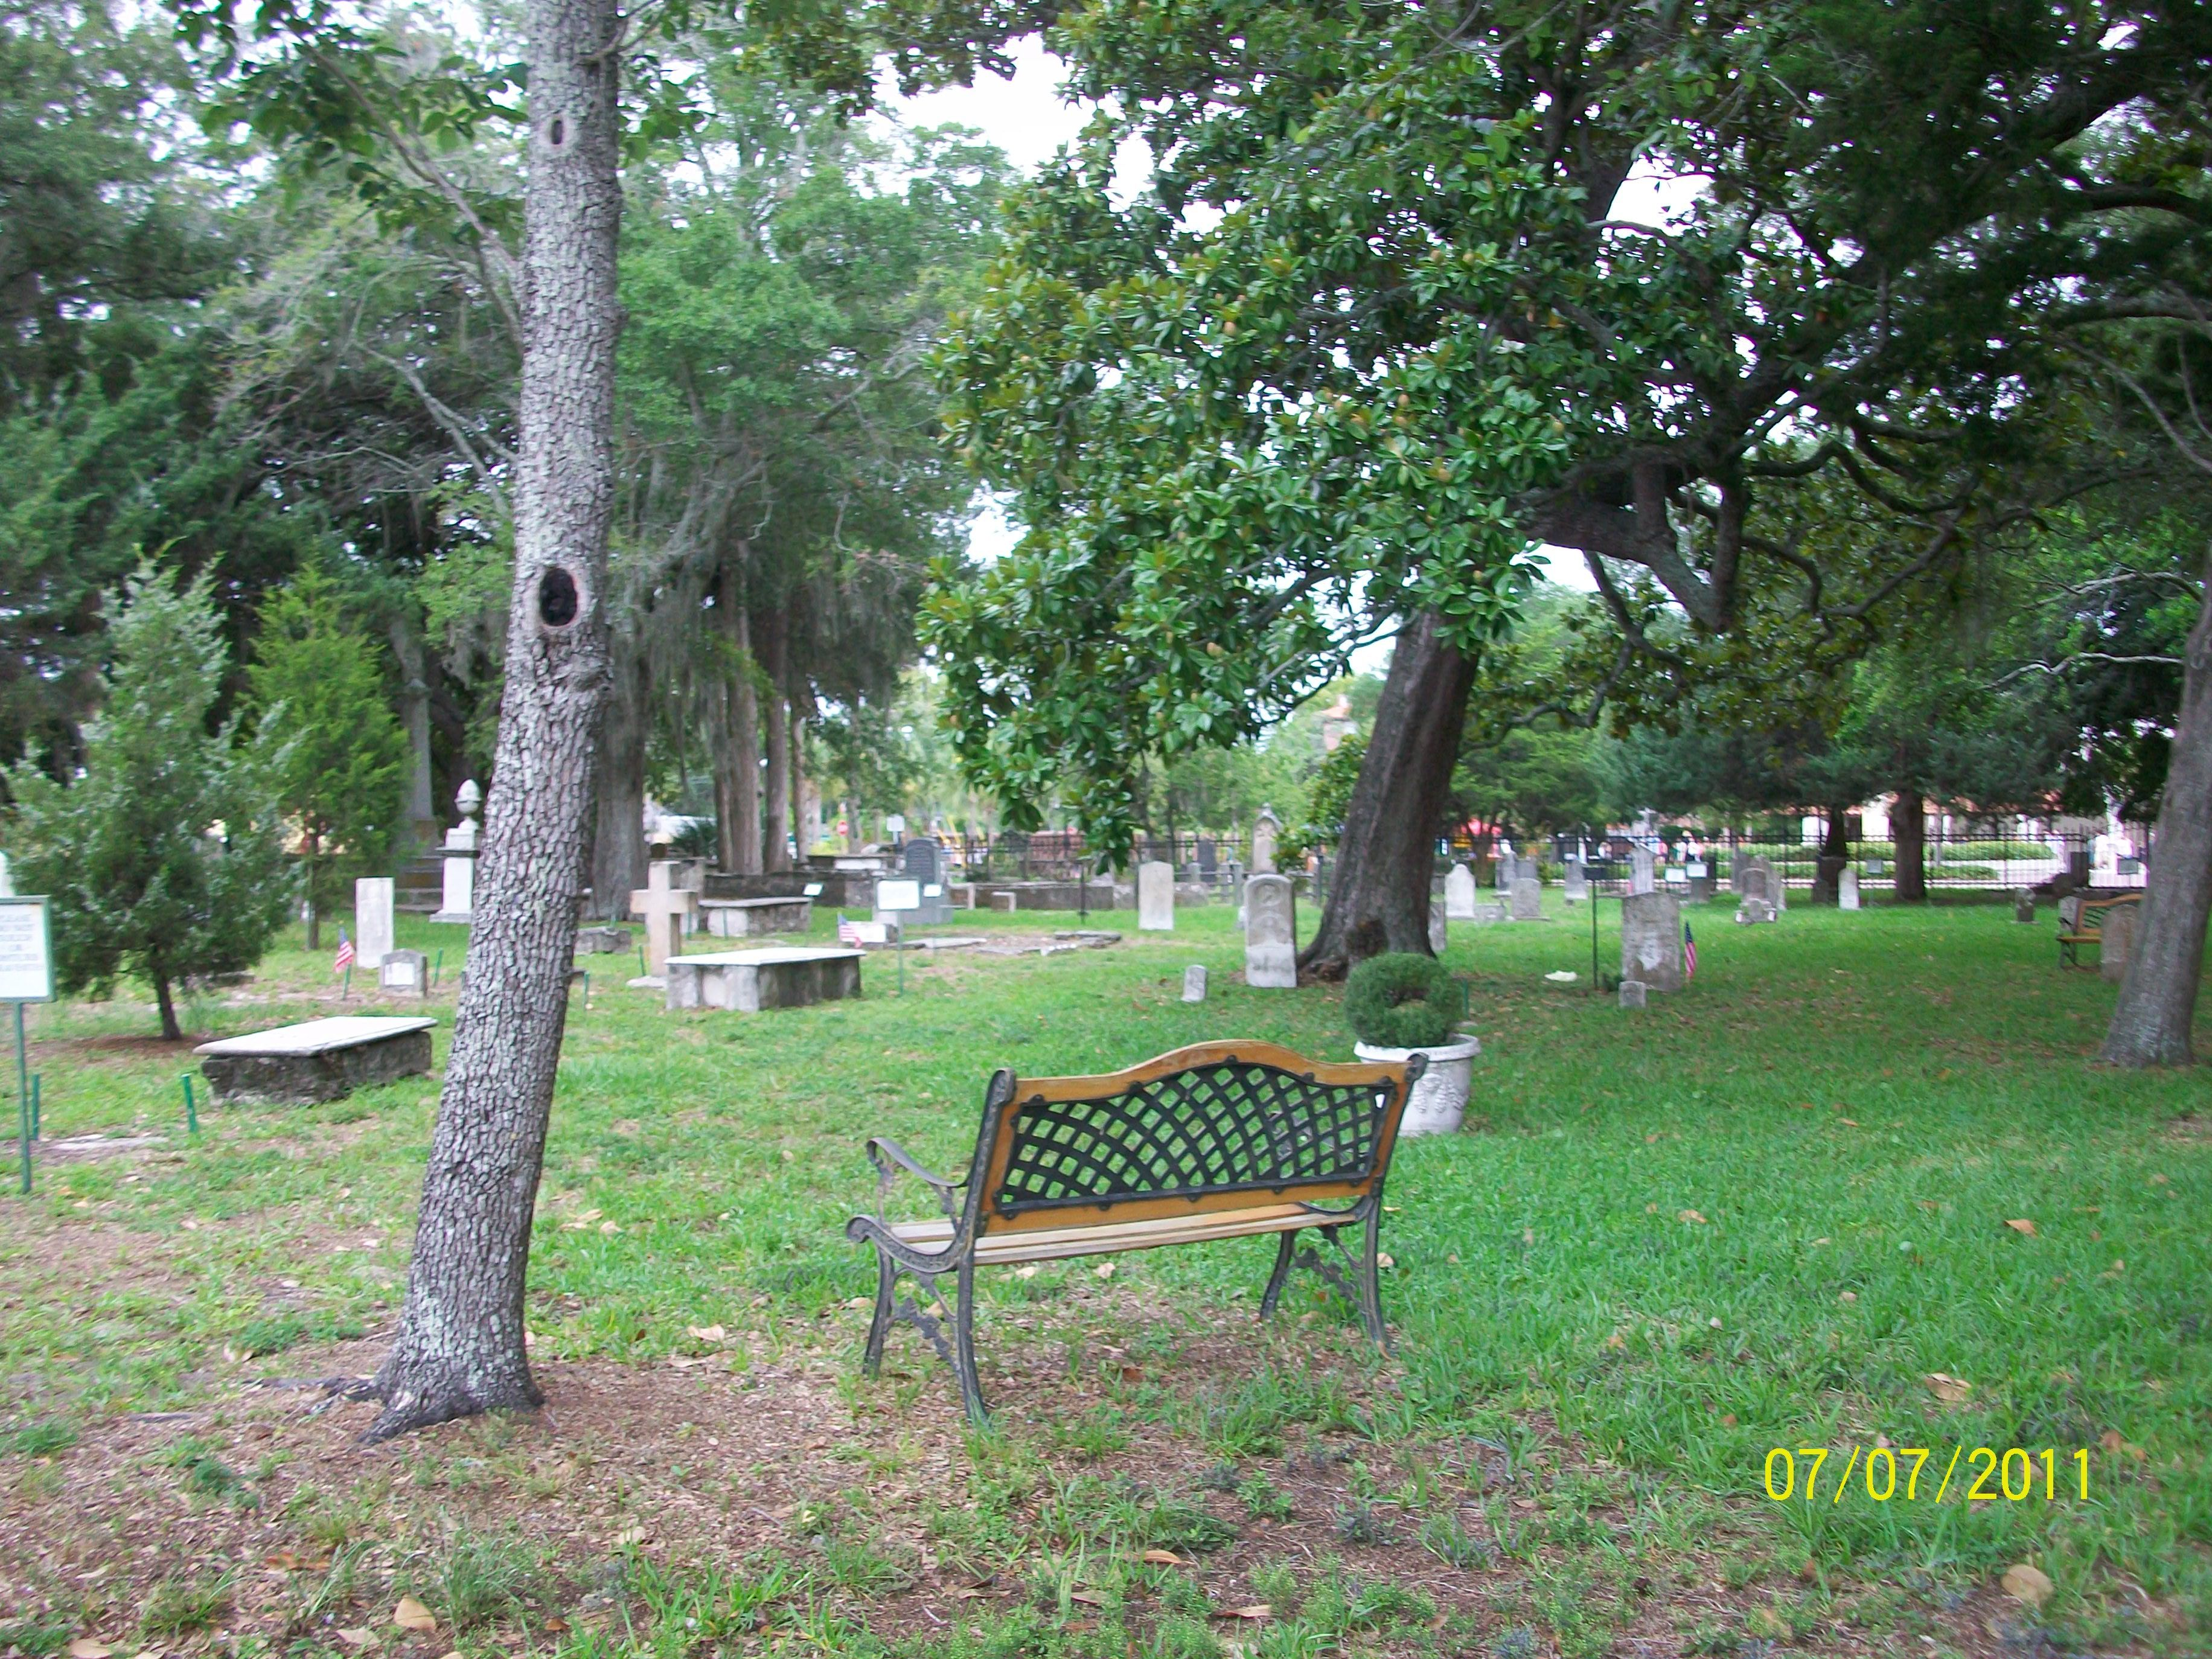 Furniture stores in st augustine fl   Best images about Huguenot Cemetery St Augustine FL on